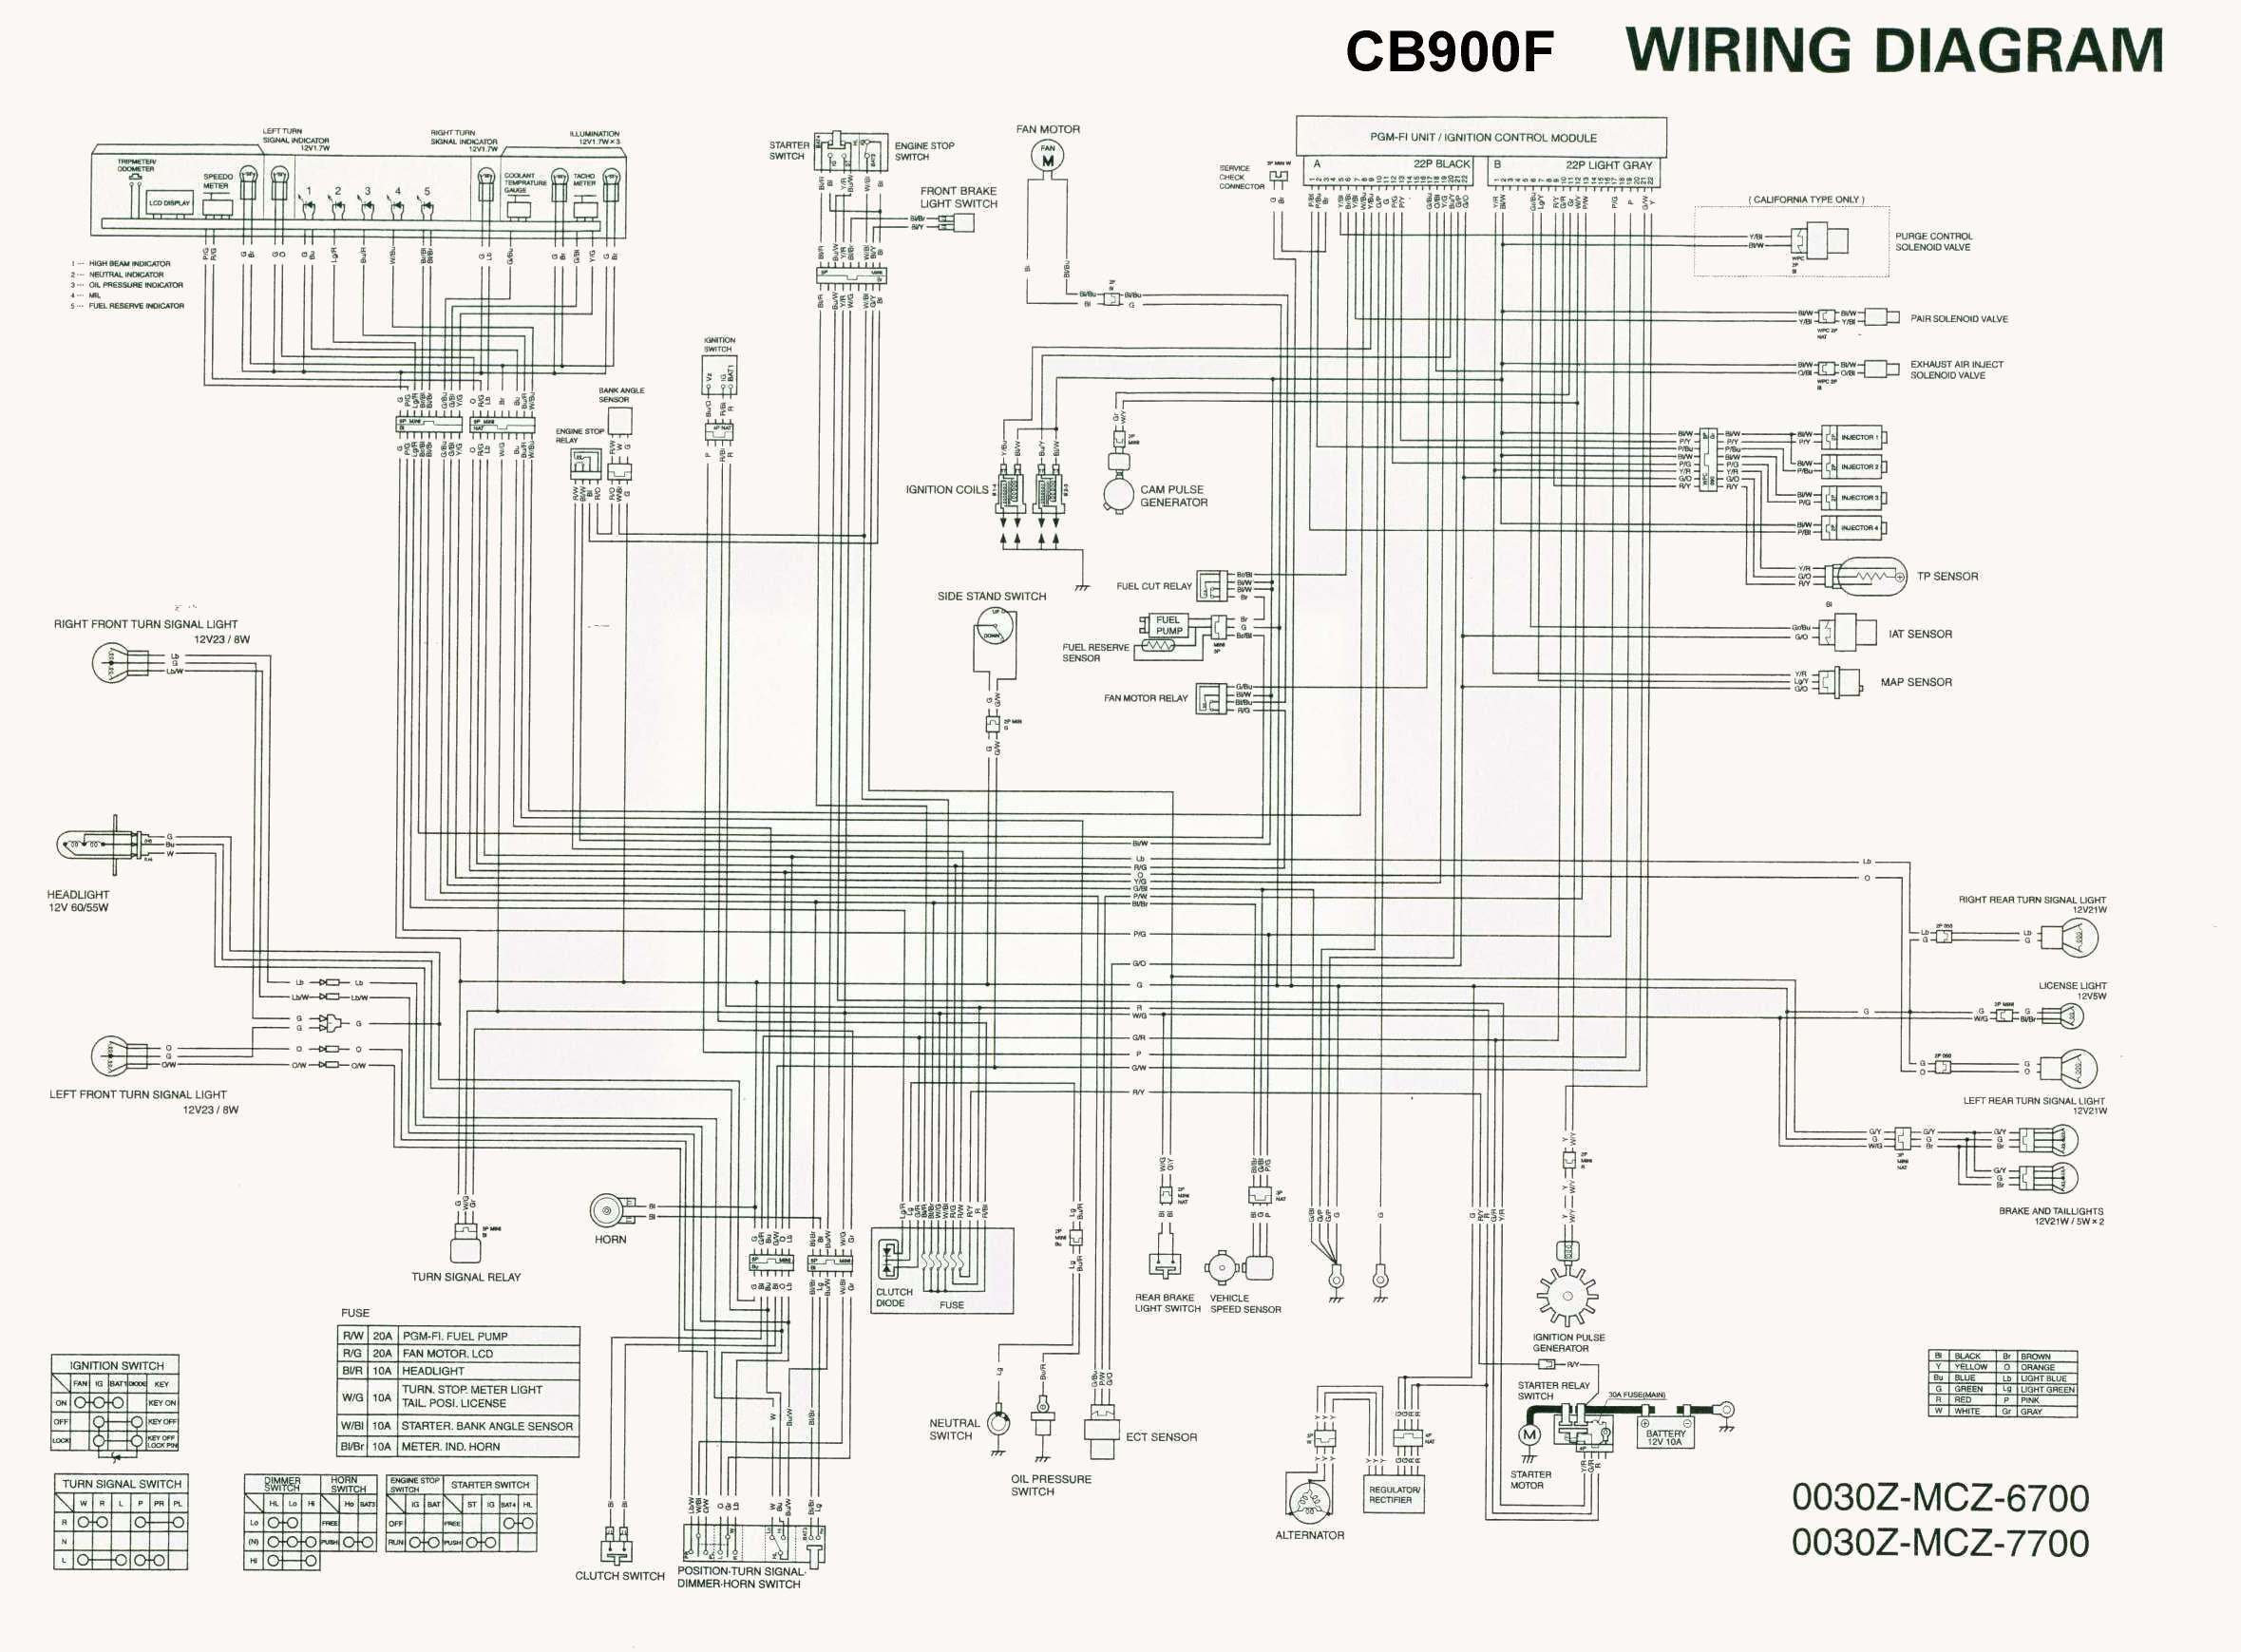 1978 Honda Xl 125 Wiring Diagram My Wiring Diagram